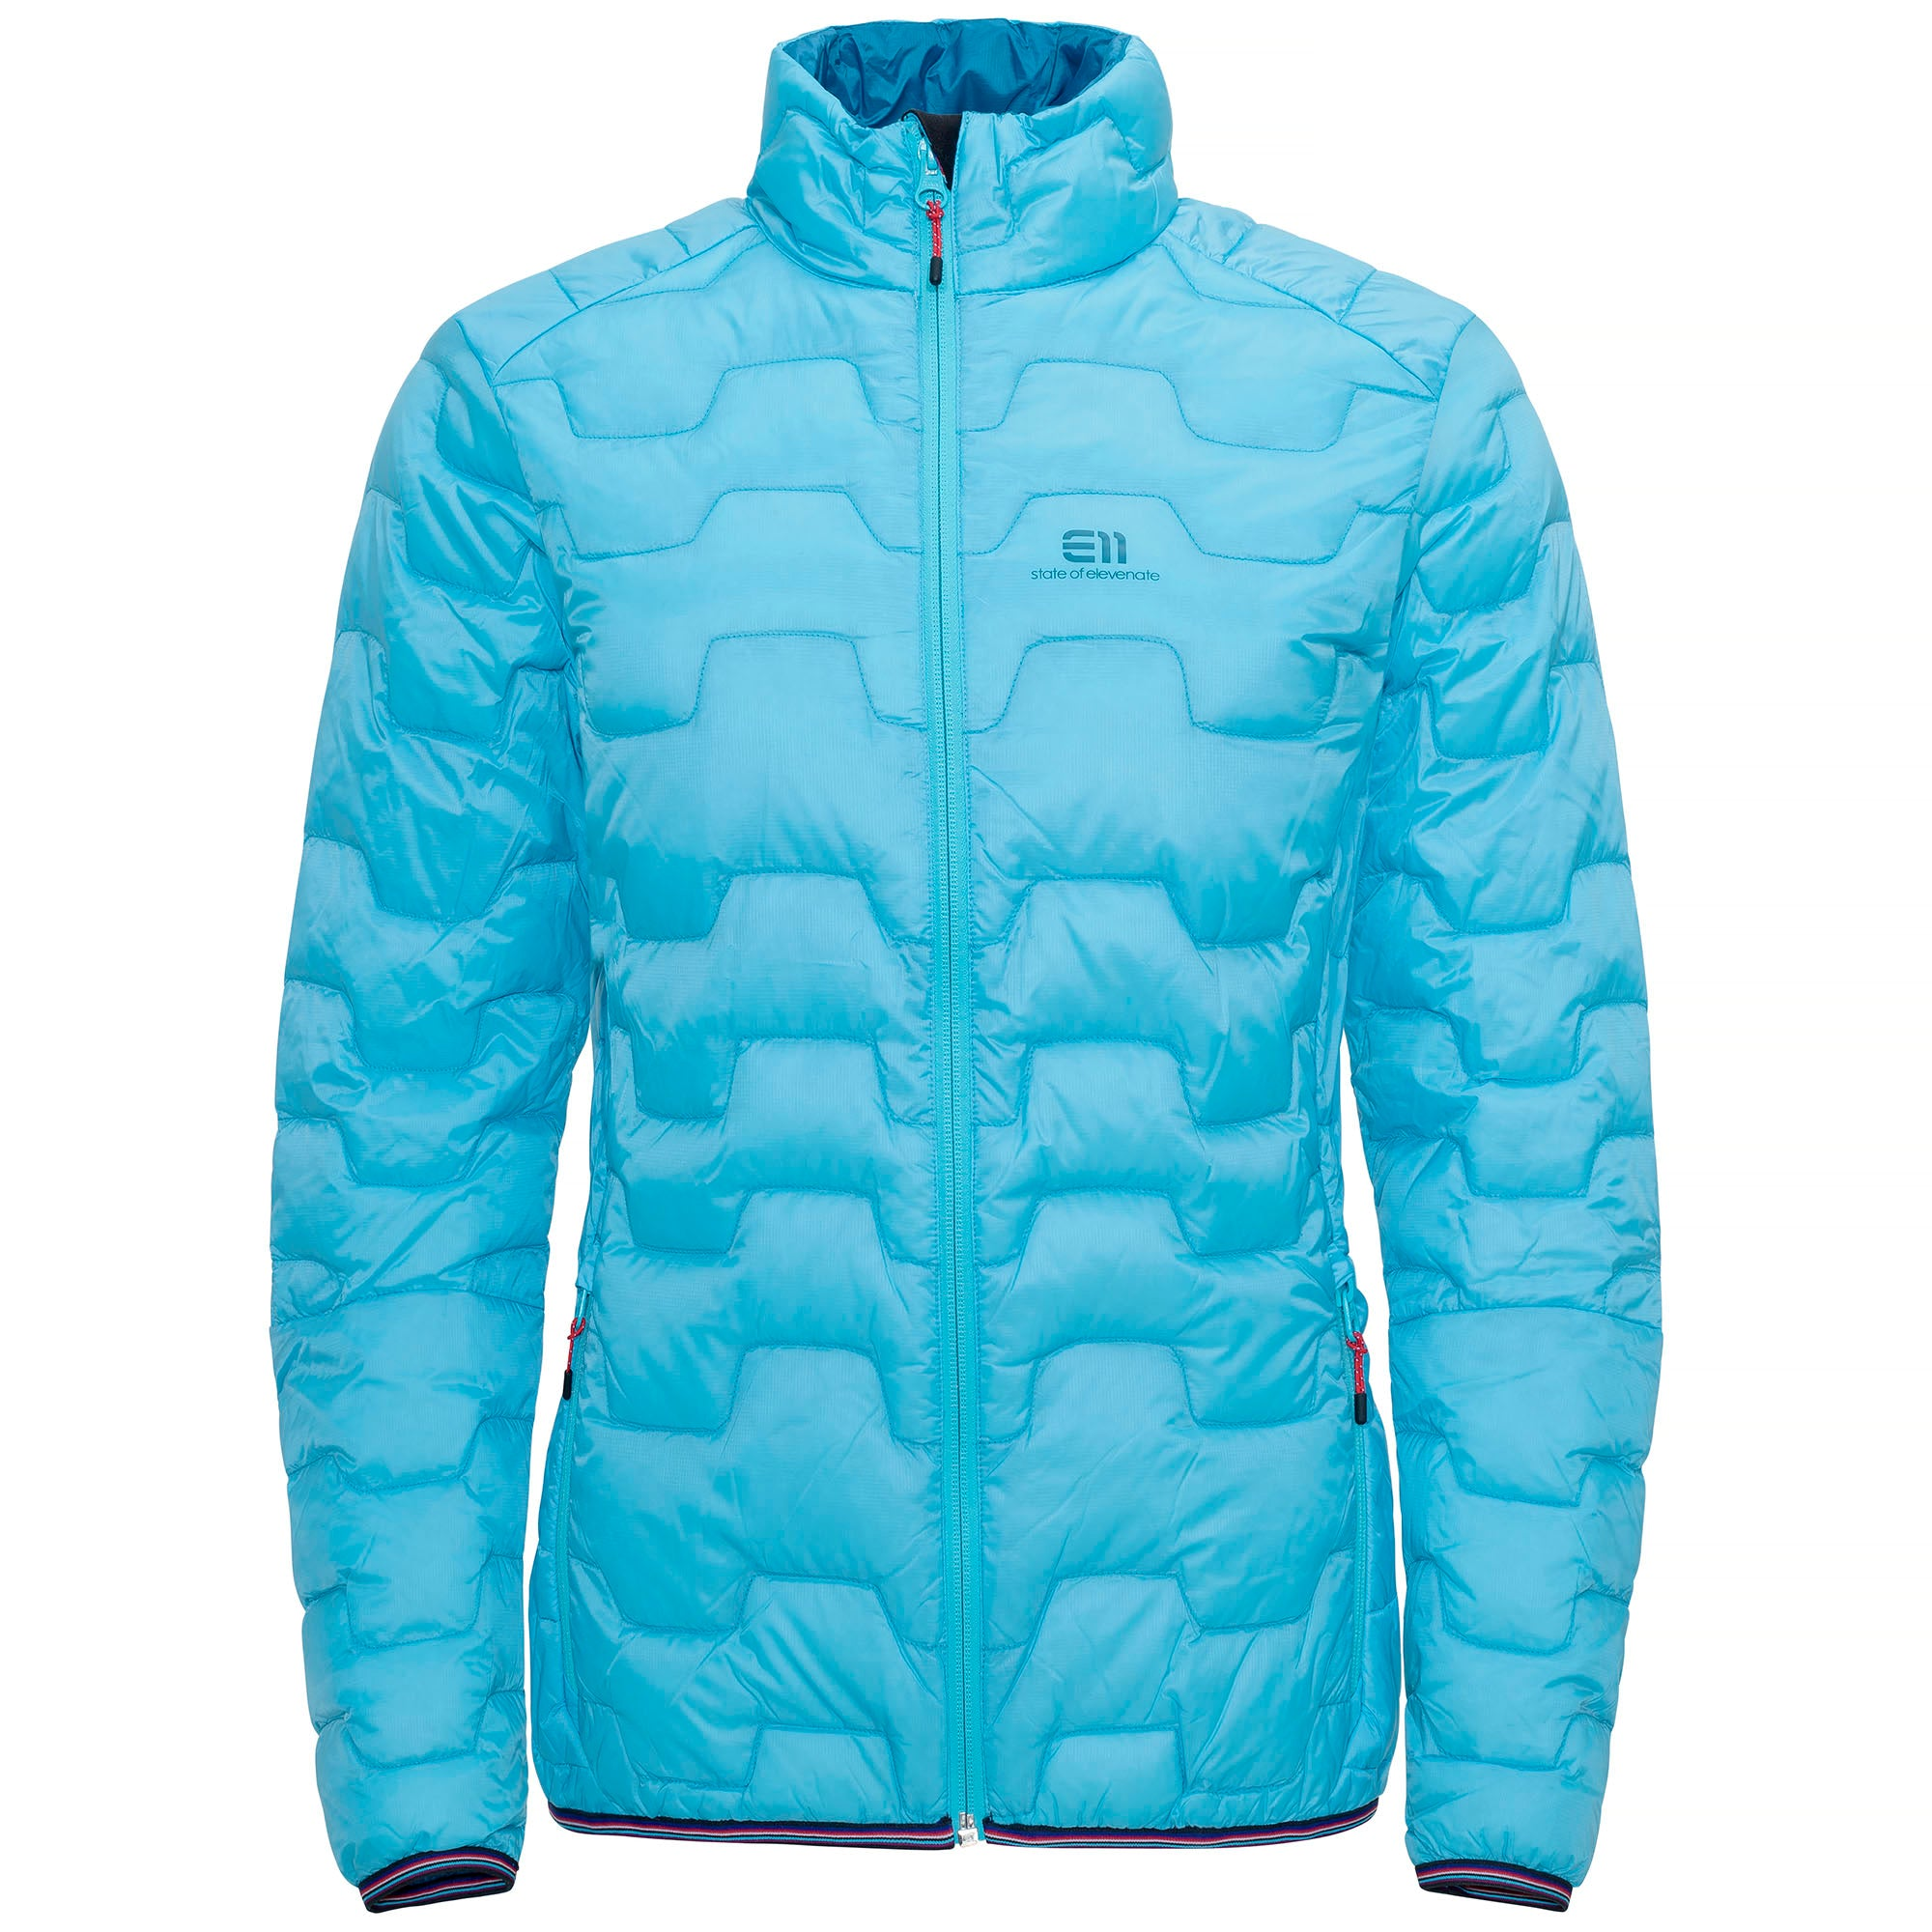 W Motion Down Jacket